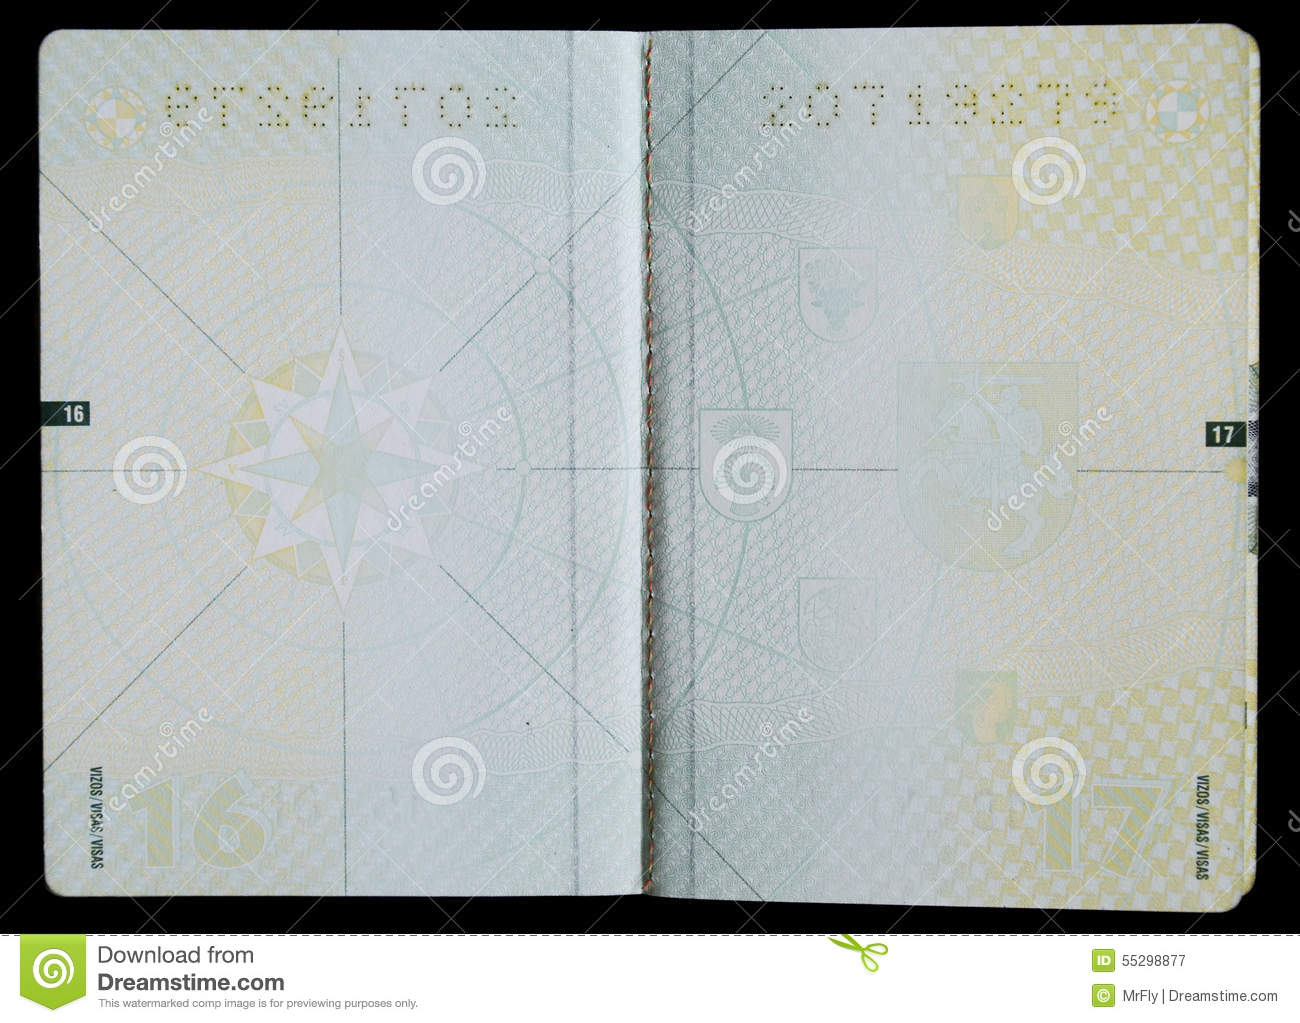 how to travel with two passports ebook download